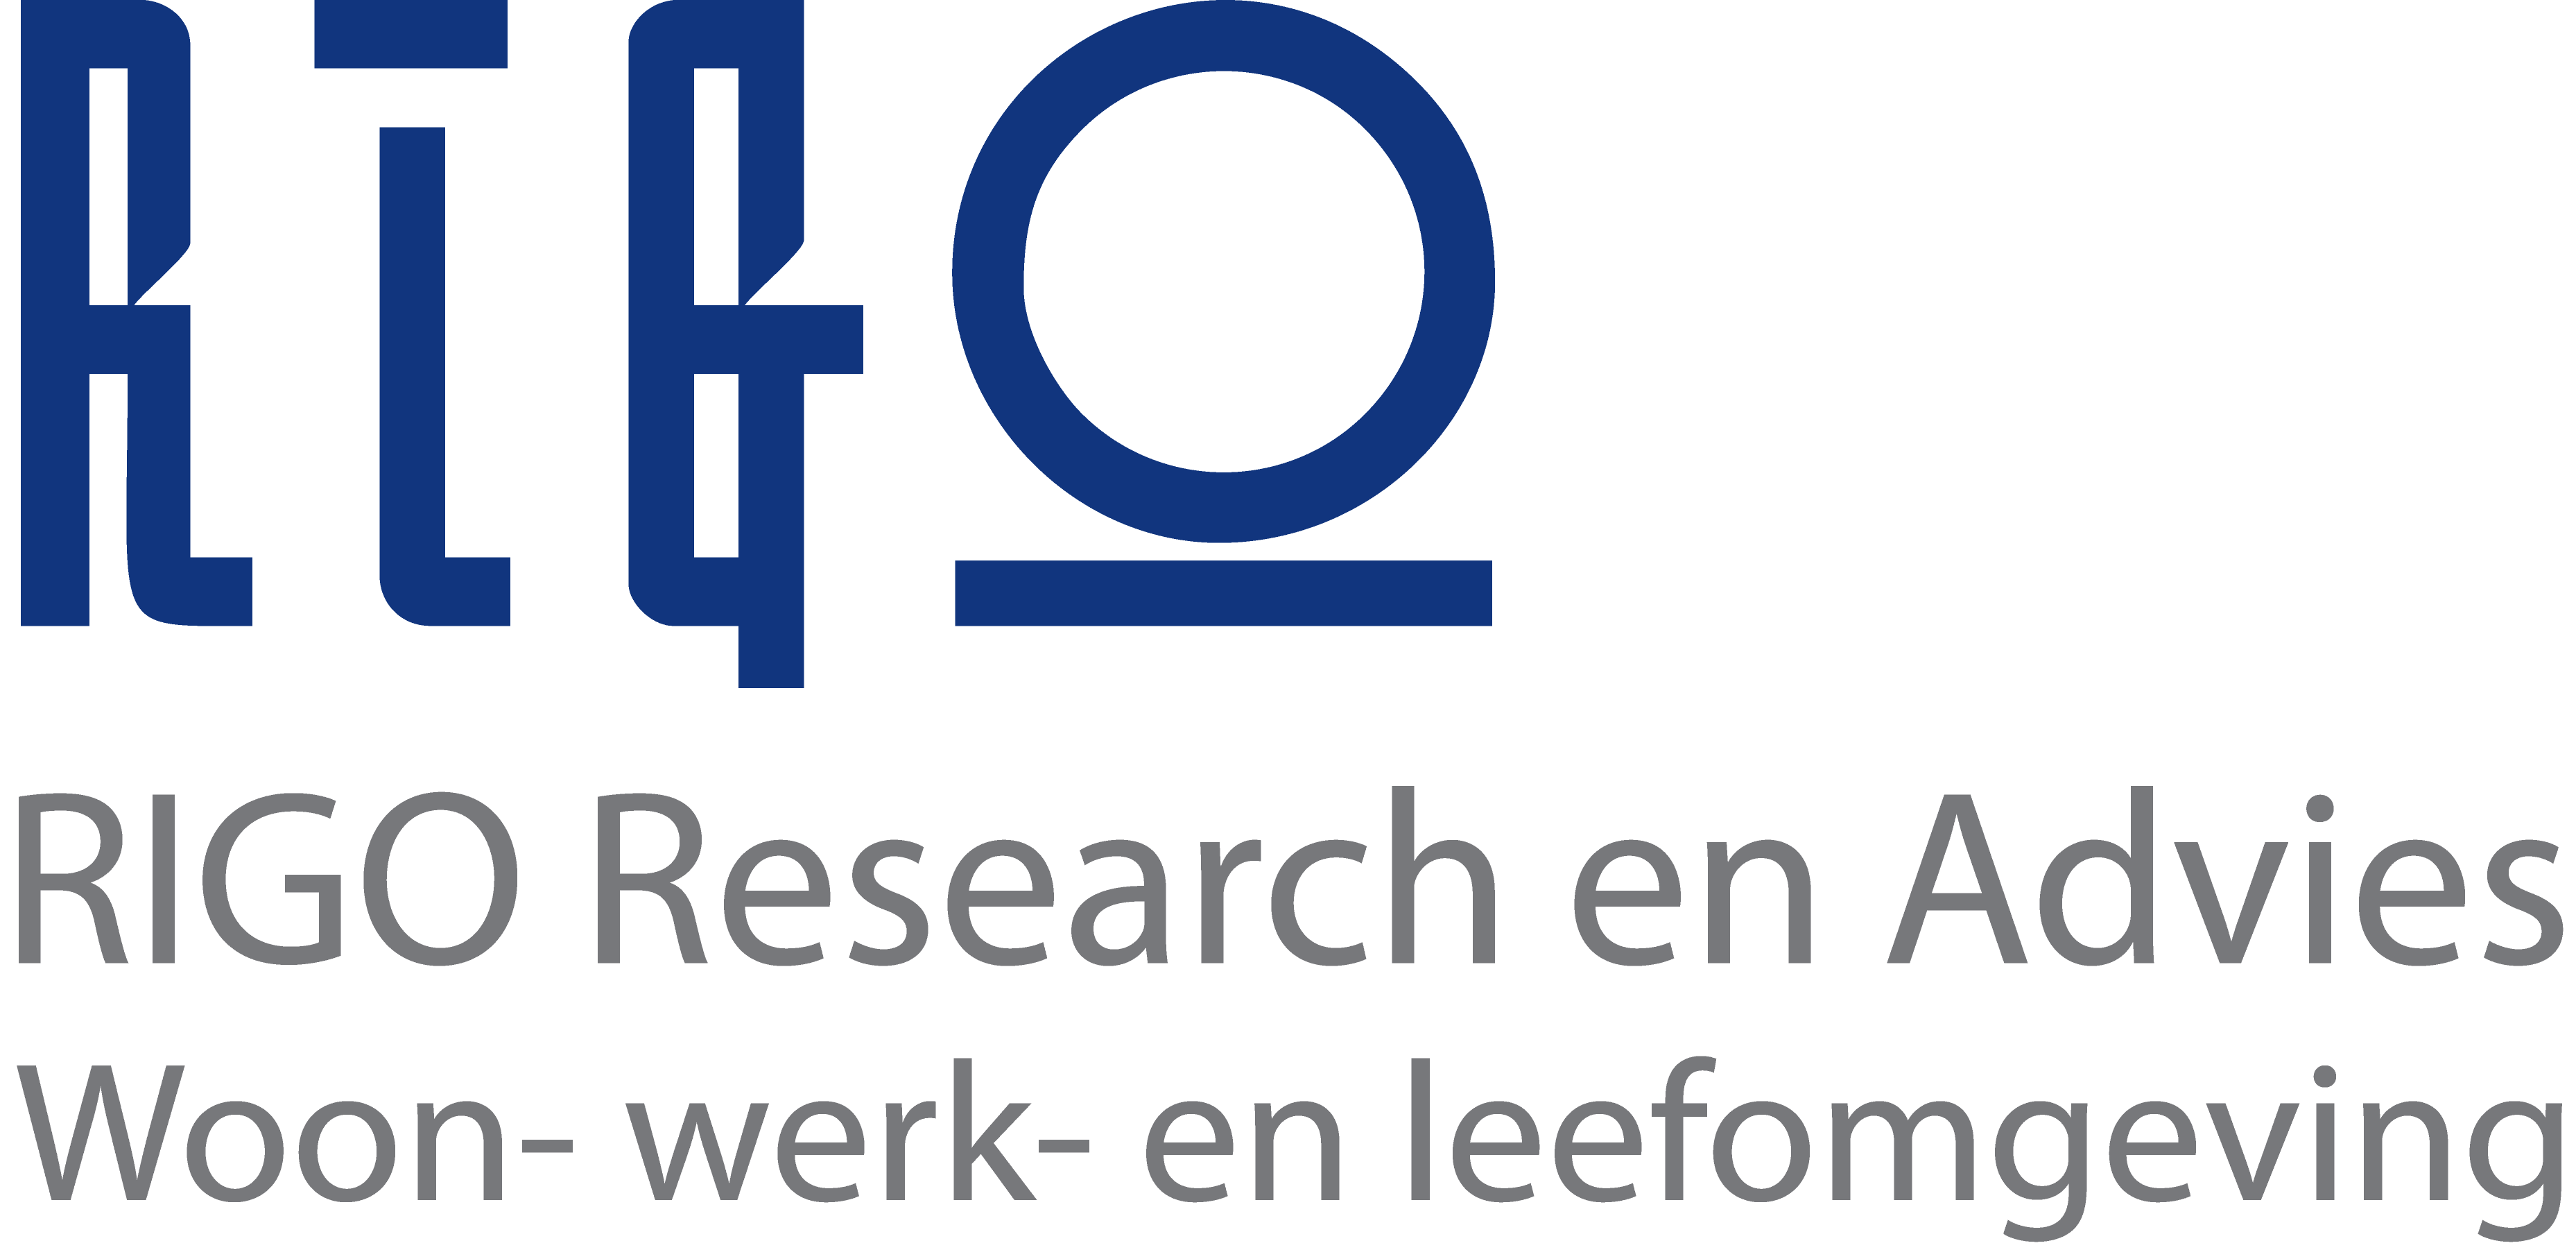 RIGO Research & Advies